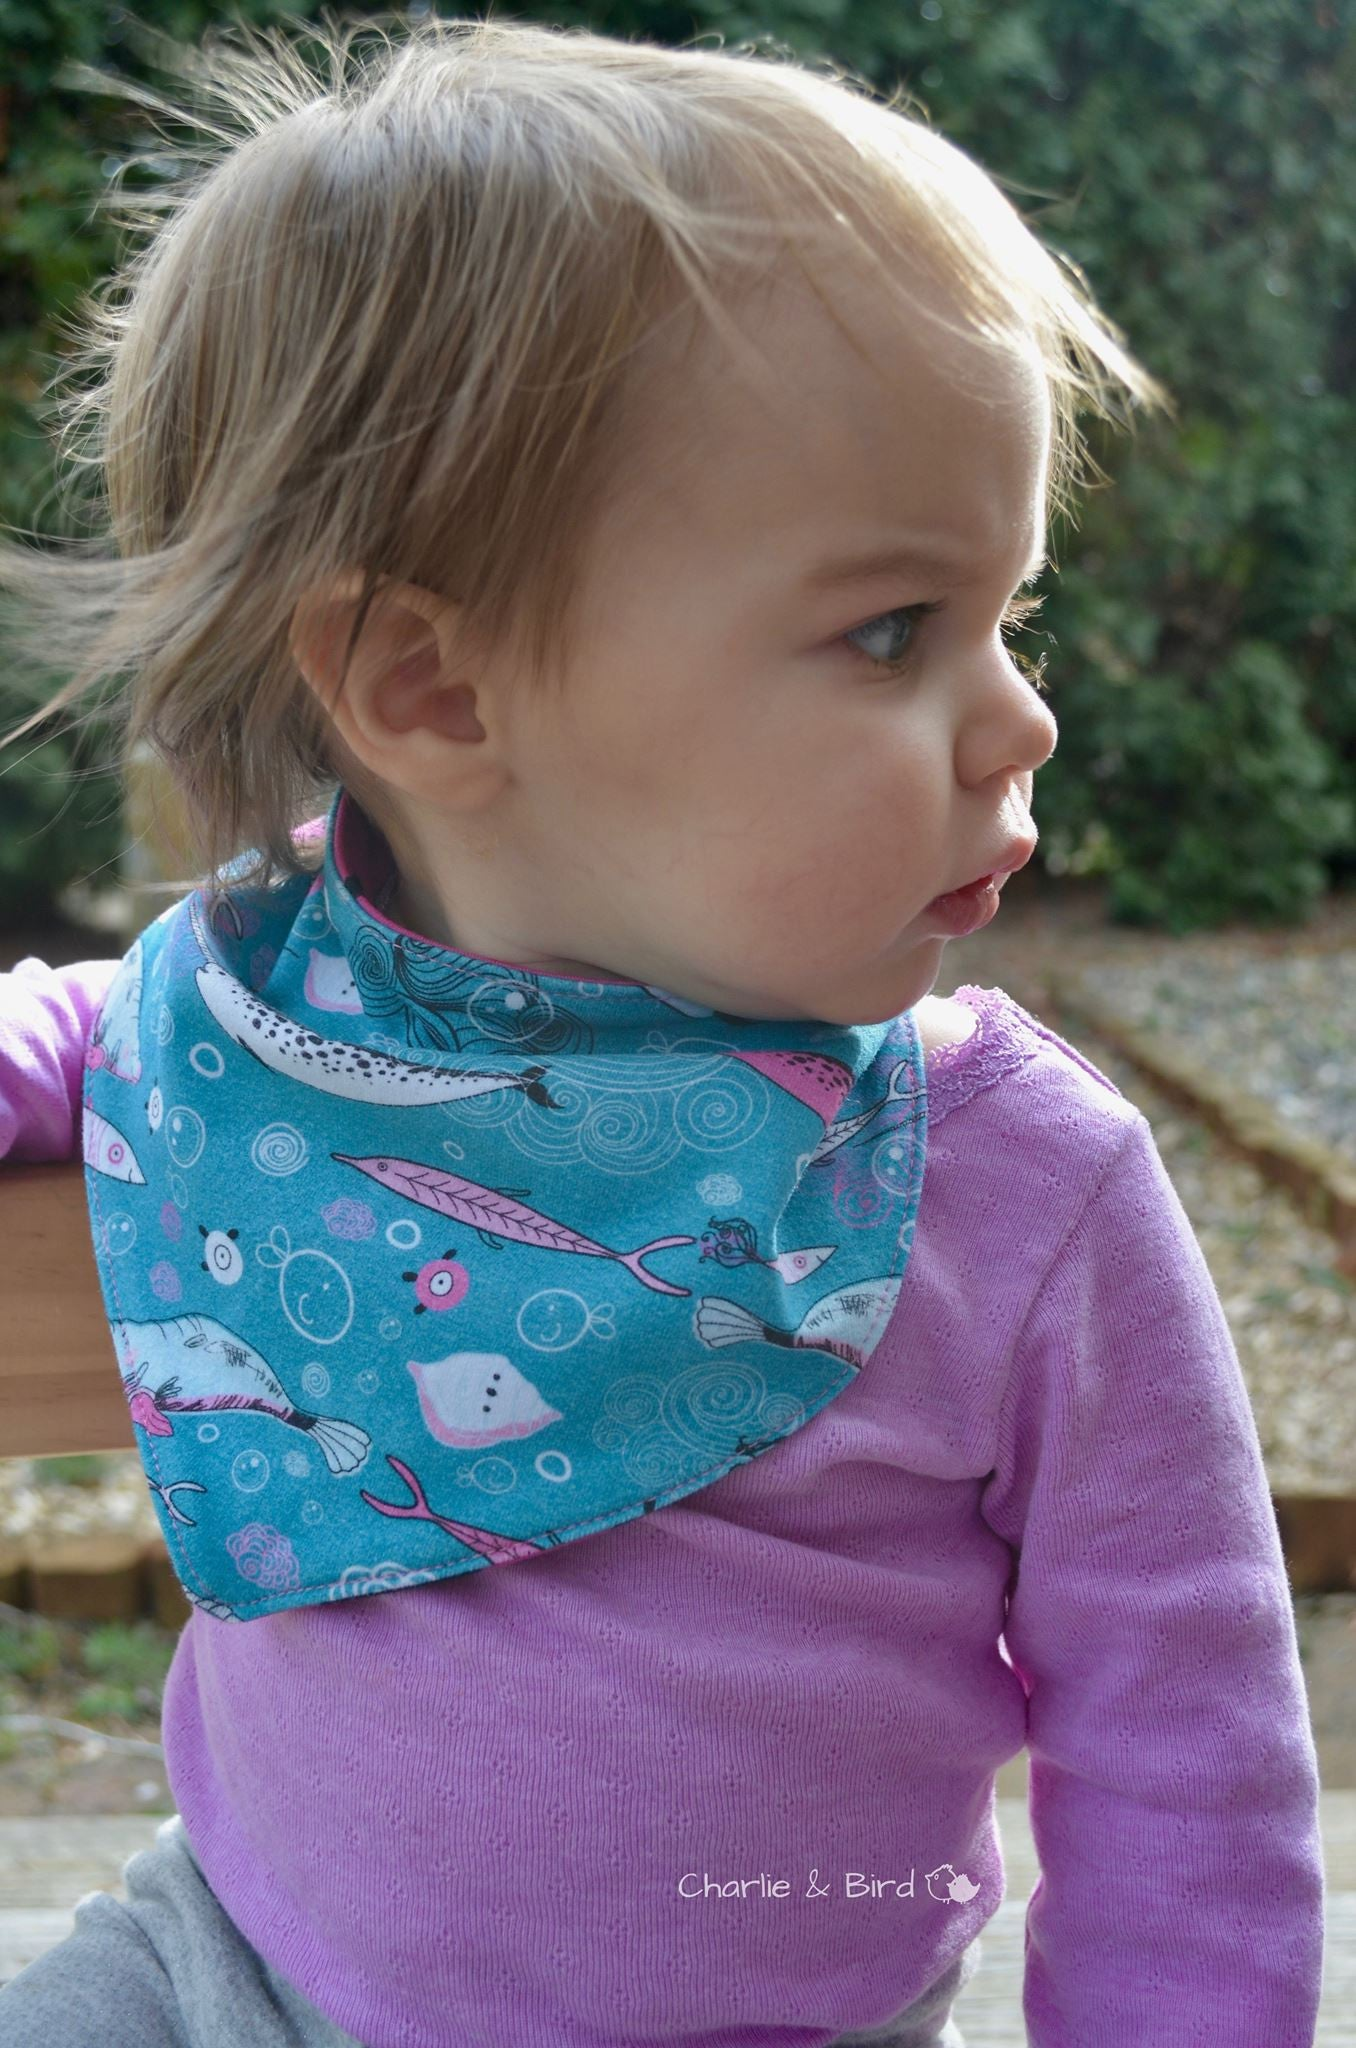 Dribble Lips Bandana Bib SEWING PDF Pattern